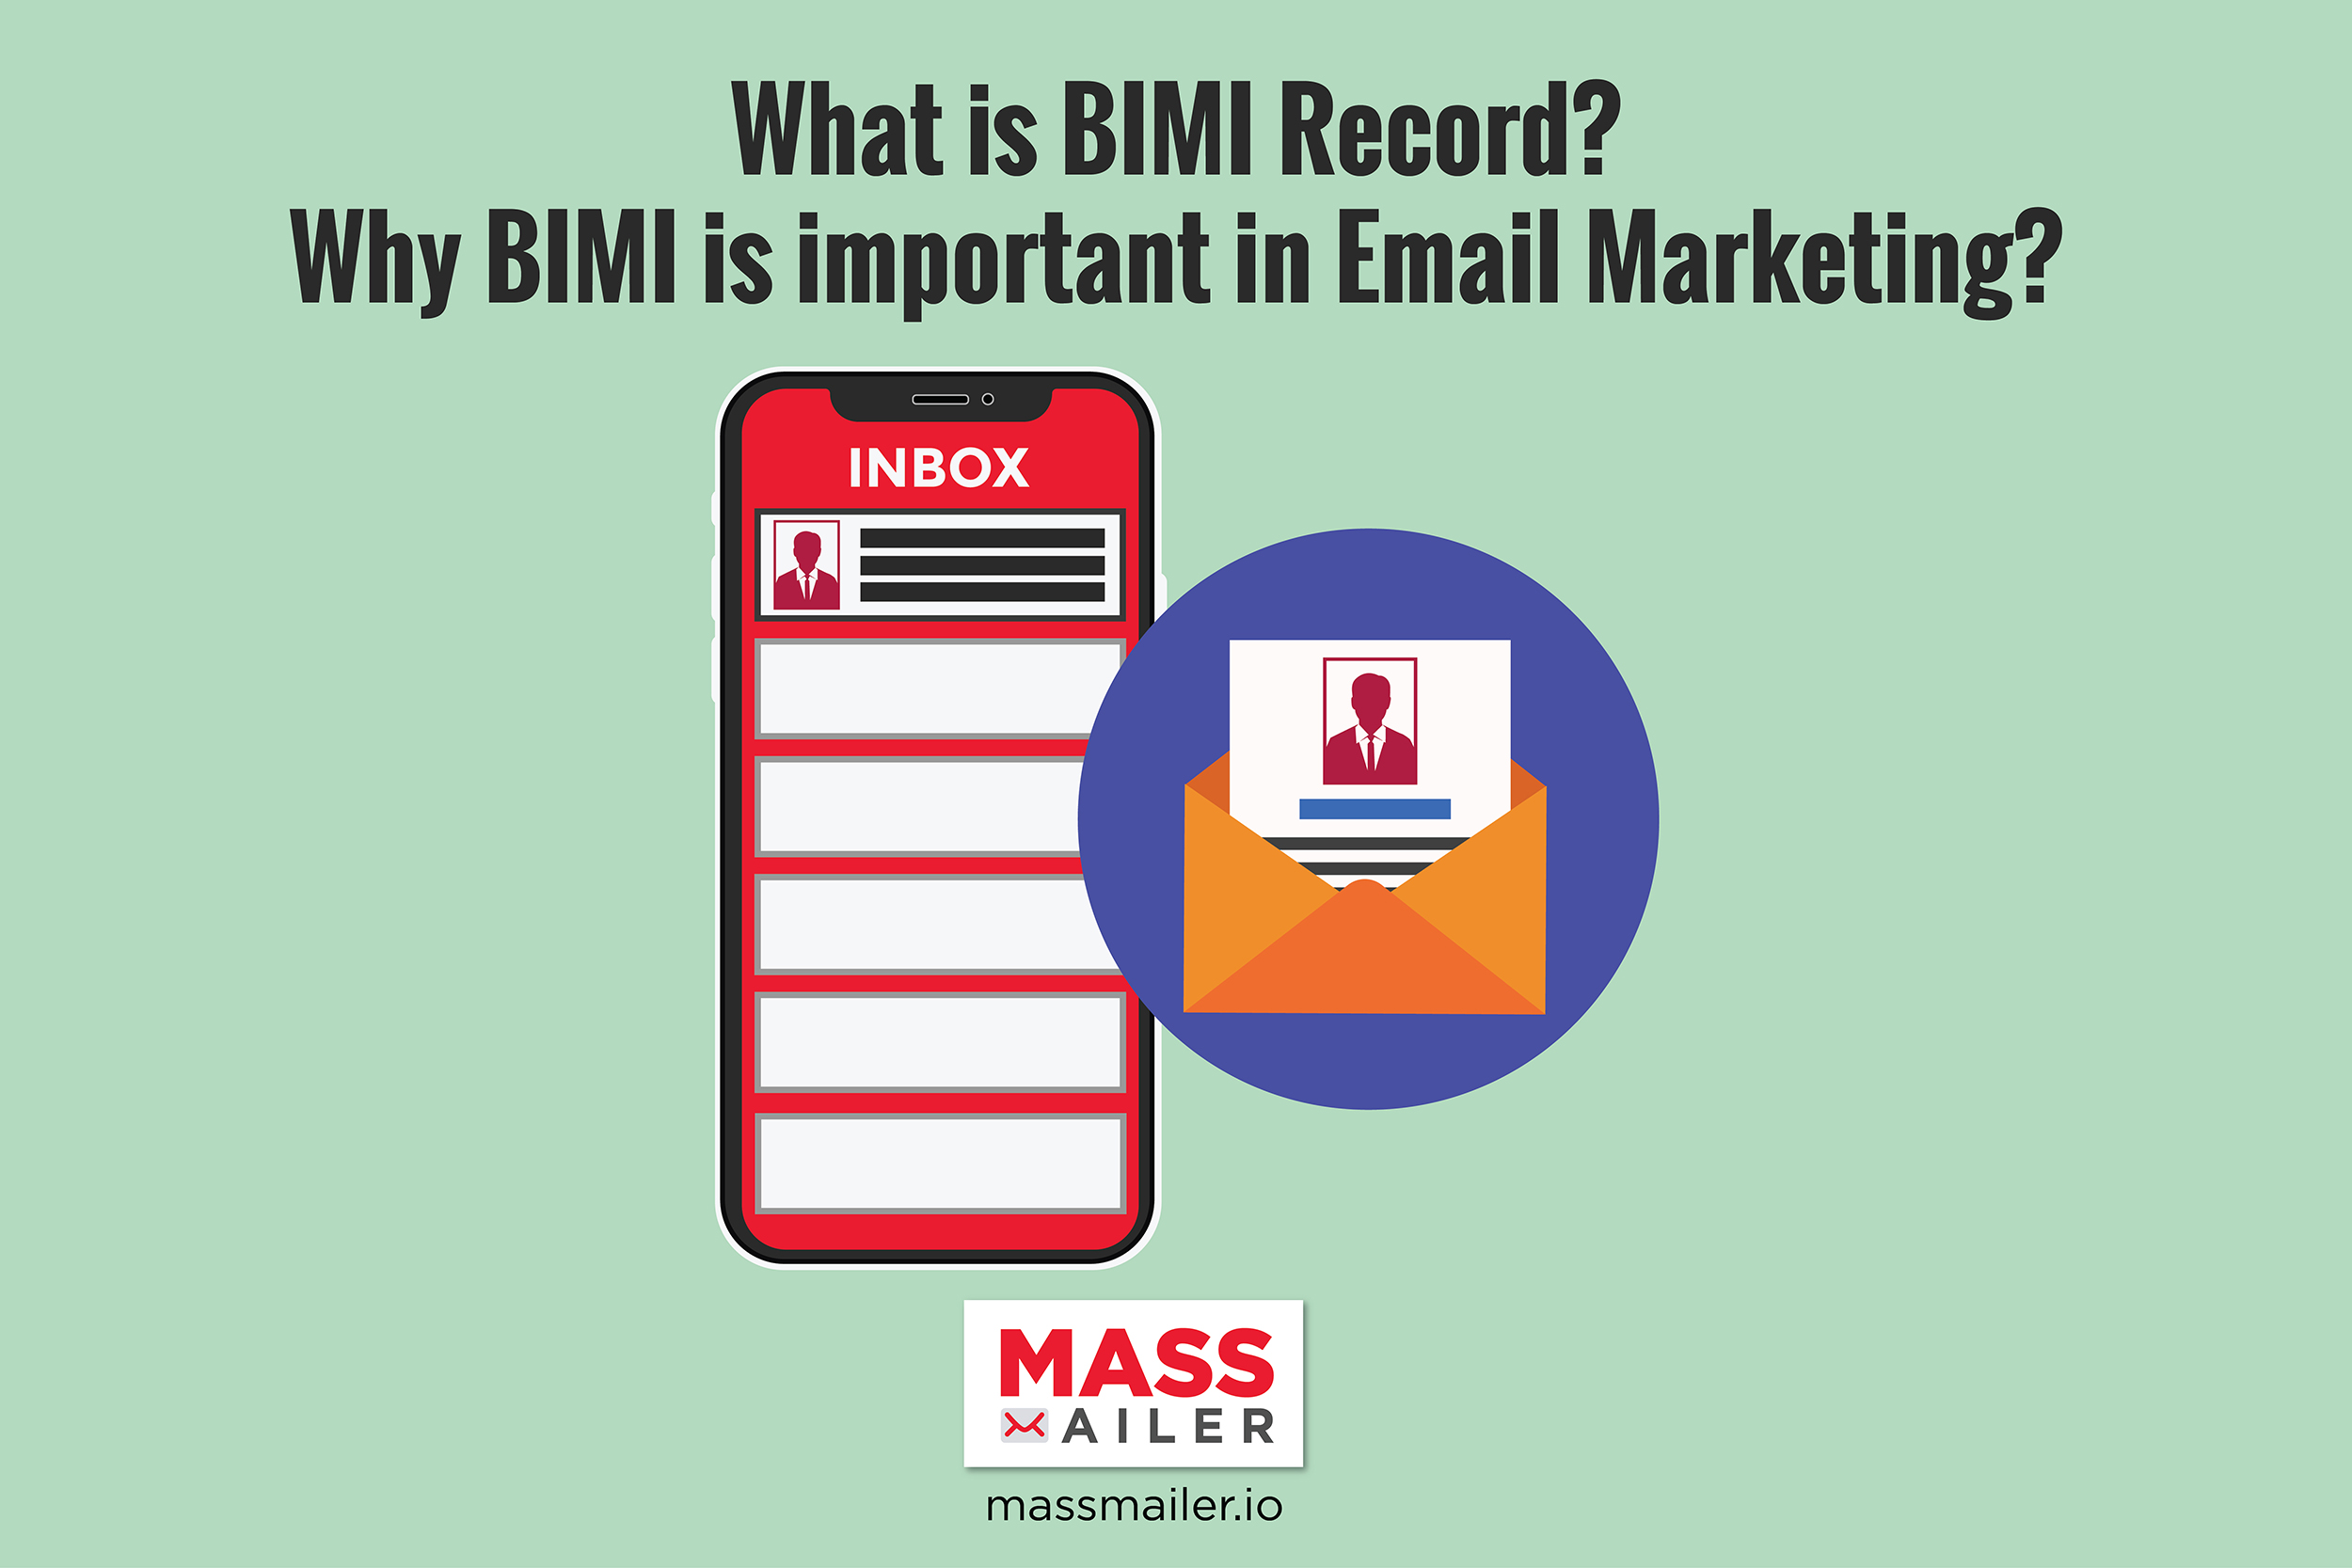 What is BIMI Record? Why BIMI is important in Email Marketing?